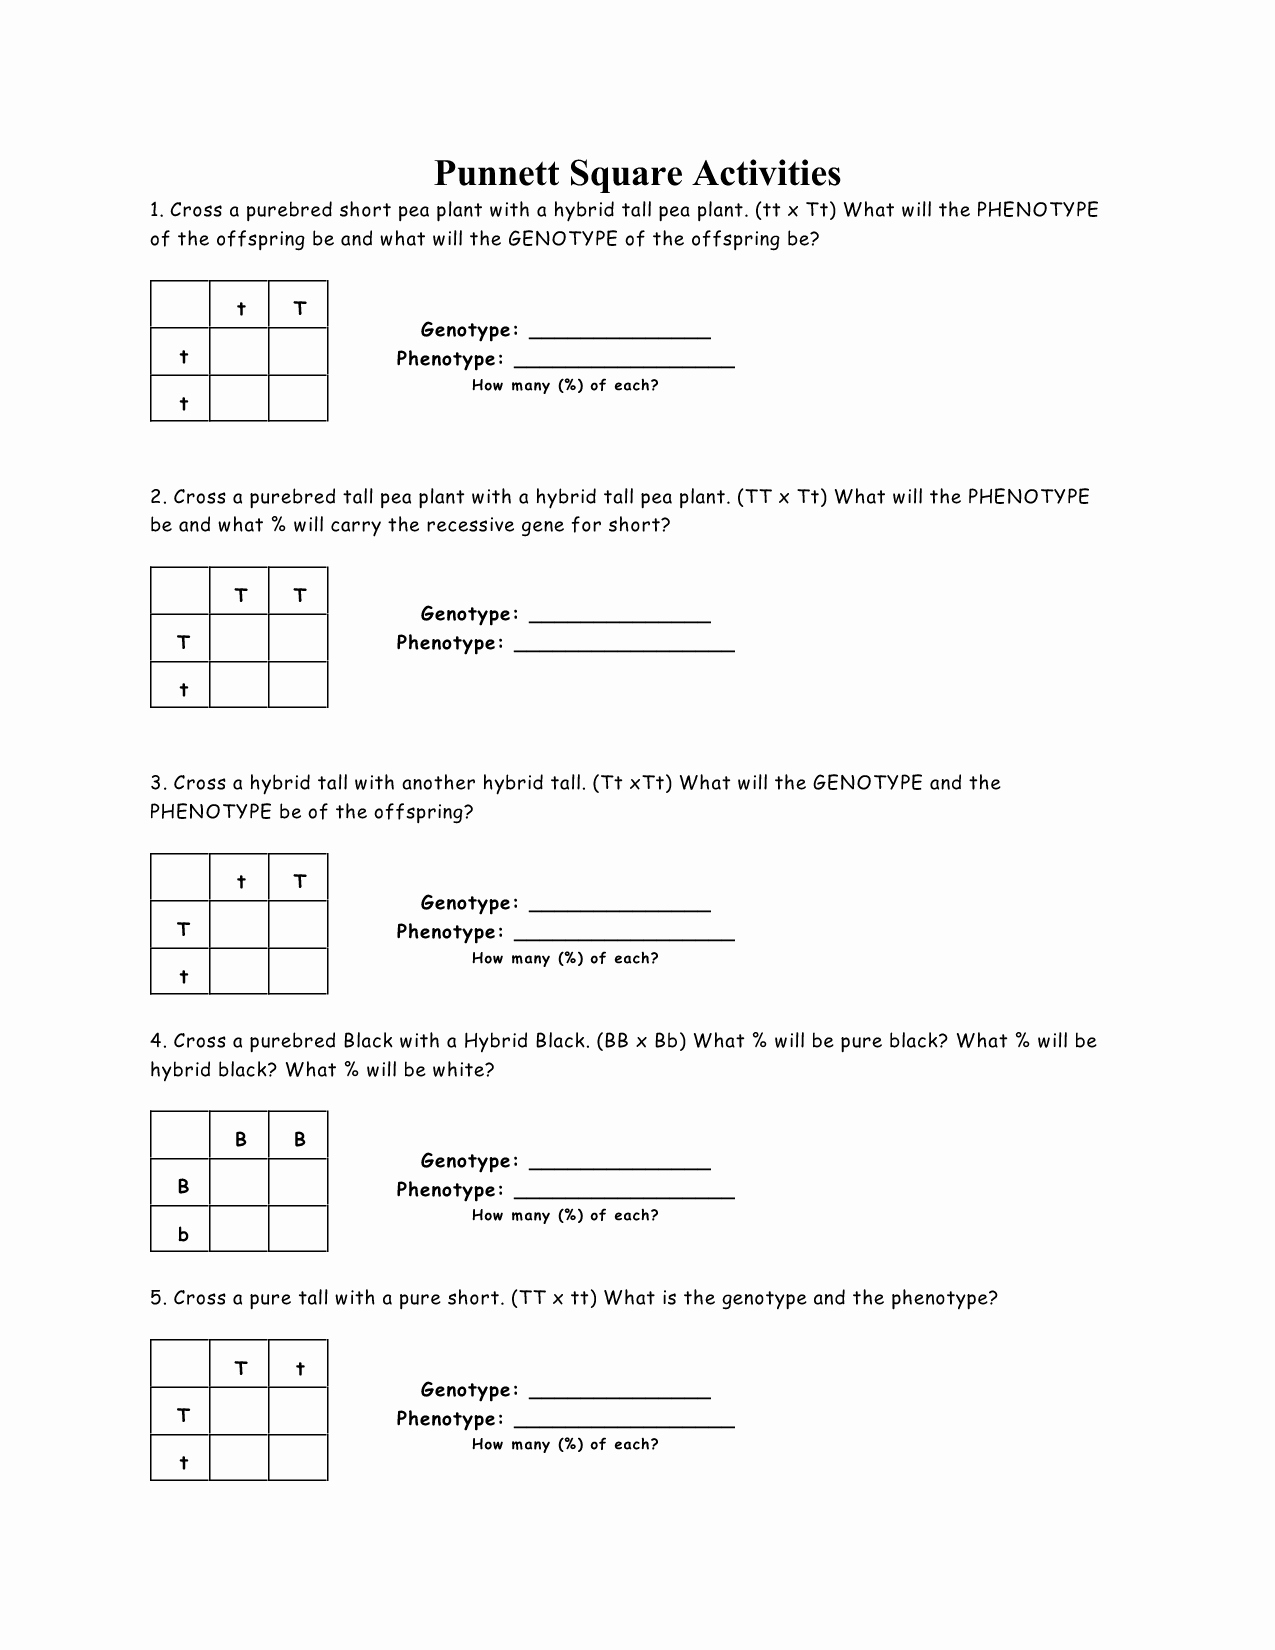 Punnett Square Practice Worksheet Answers Awesome 15 Best Of Punnett Square Worksheet Answer Key